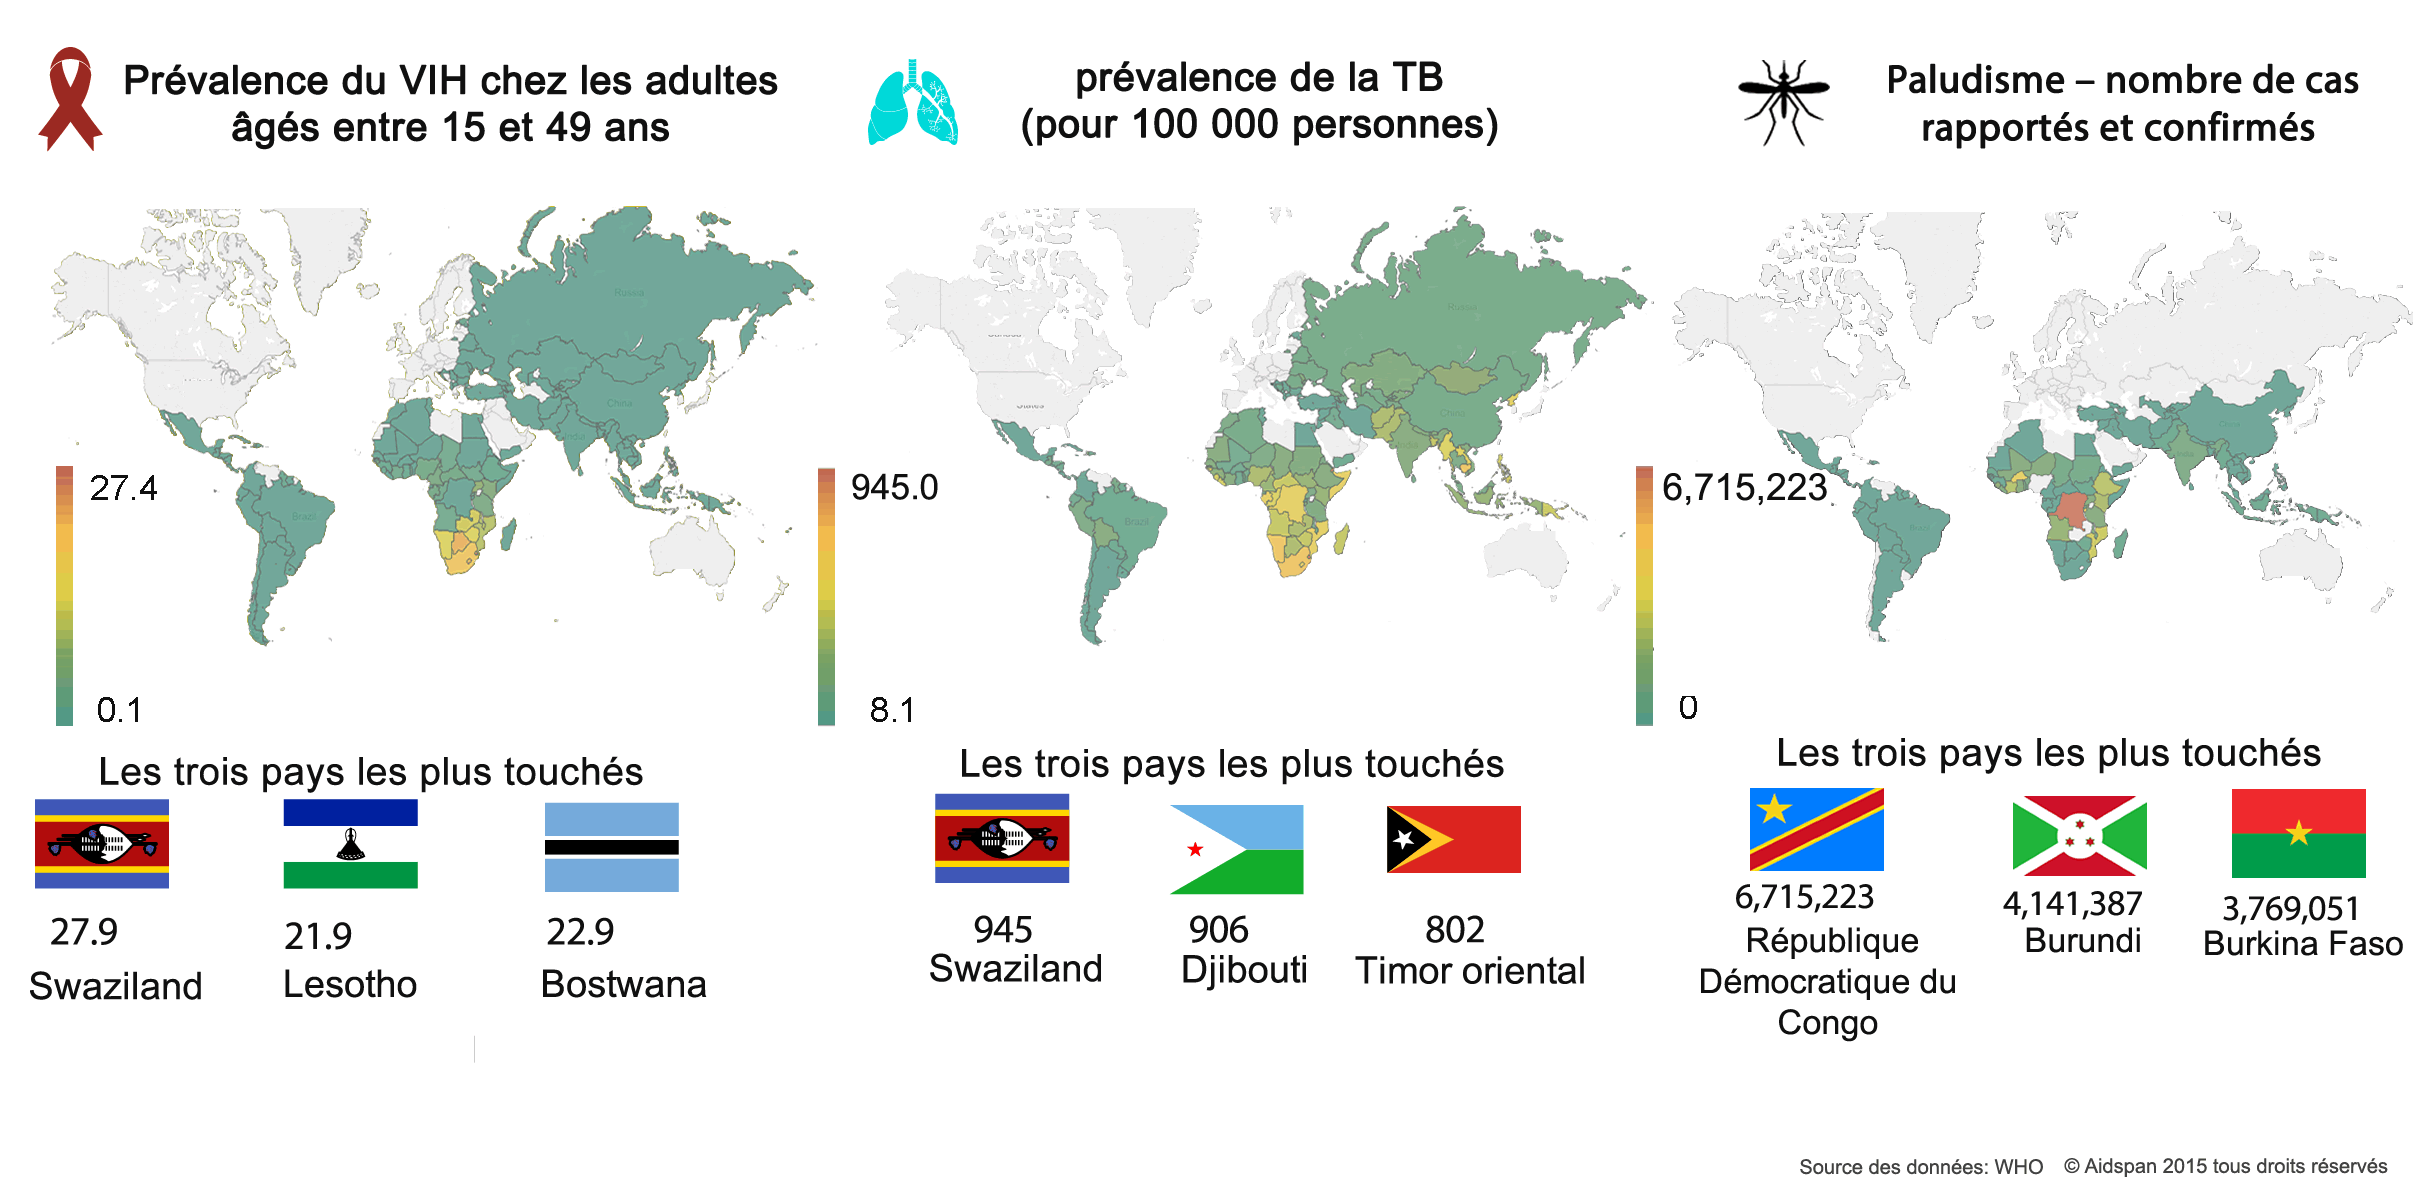 Malaria_TB_and_HIV_Prevalence_sp_fr.png